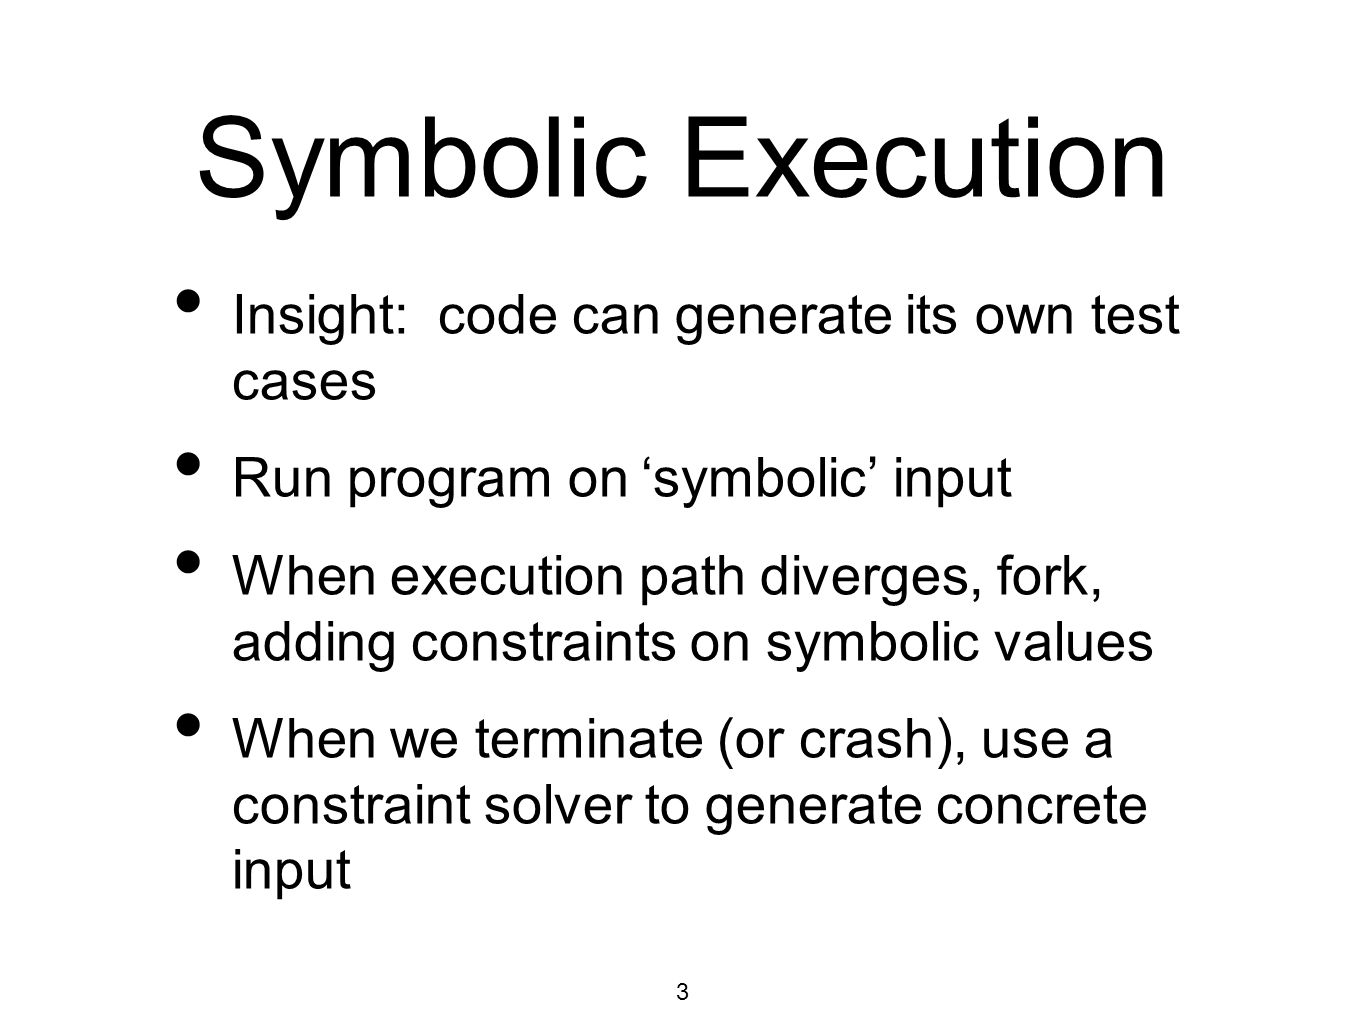 3 Symbolic Execution Insight: code can generate its own test cases Run program on 'symbolic' input When execution path diverges, fork, adding constraints on symbolic values When we terminate (or crash), use a constraint solver to generate concrete input